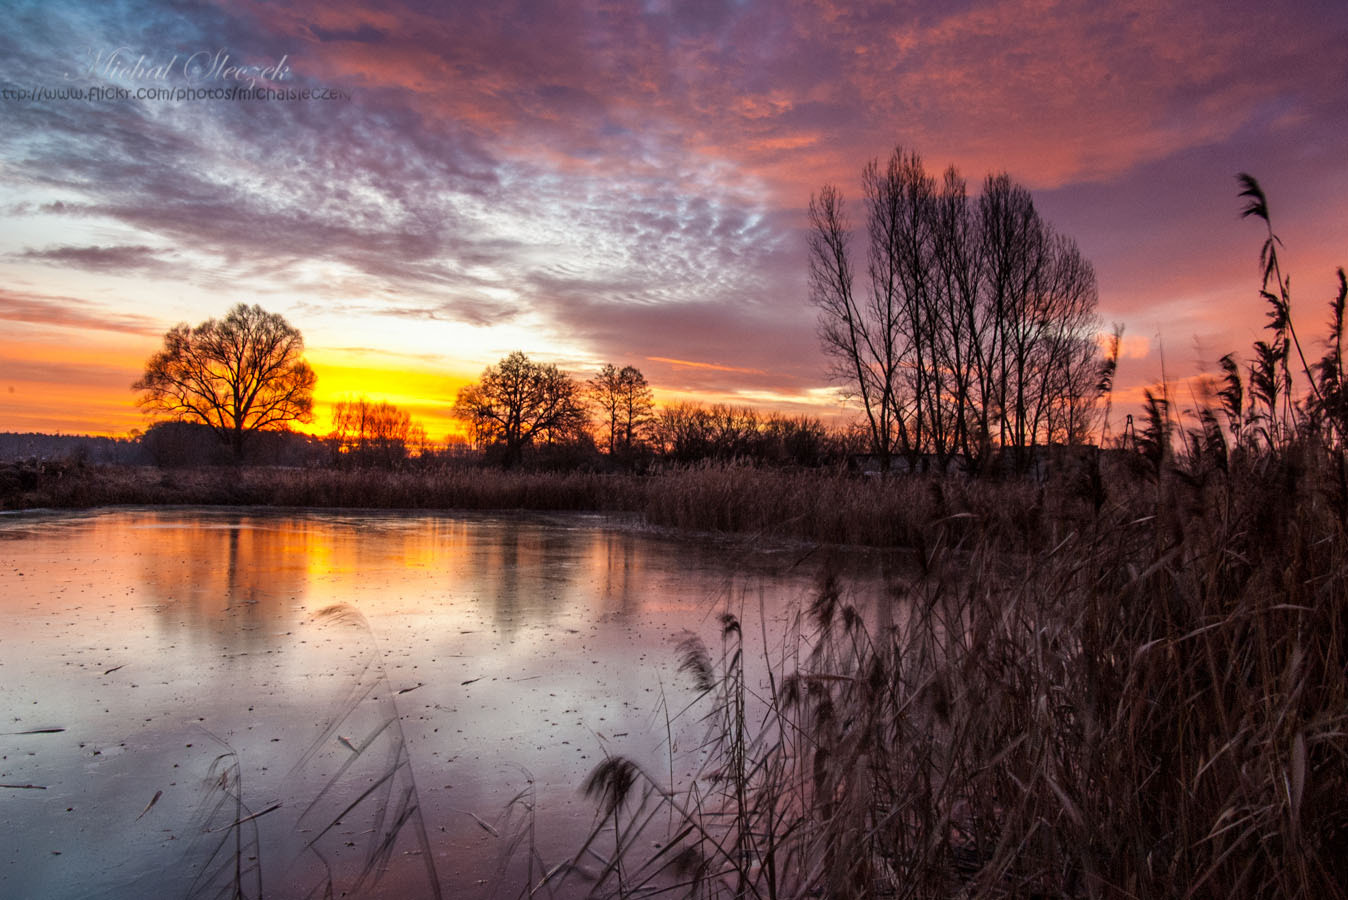 Photograph New day by Michal Sleczek on 500px